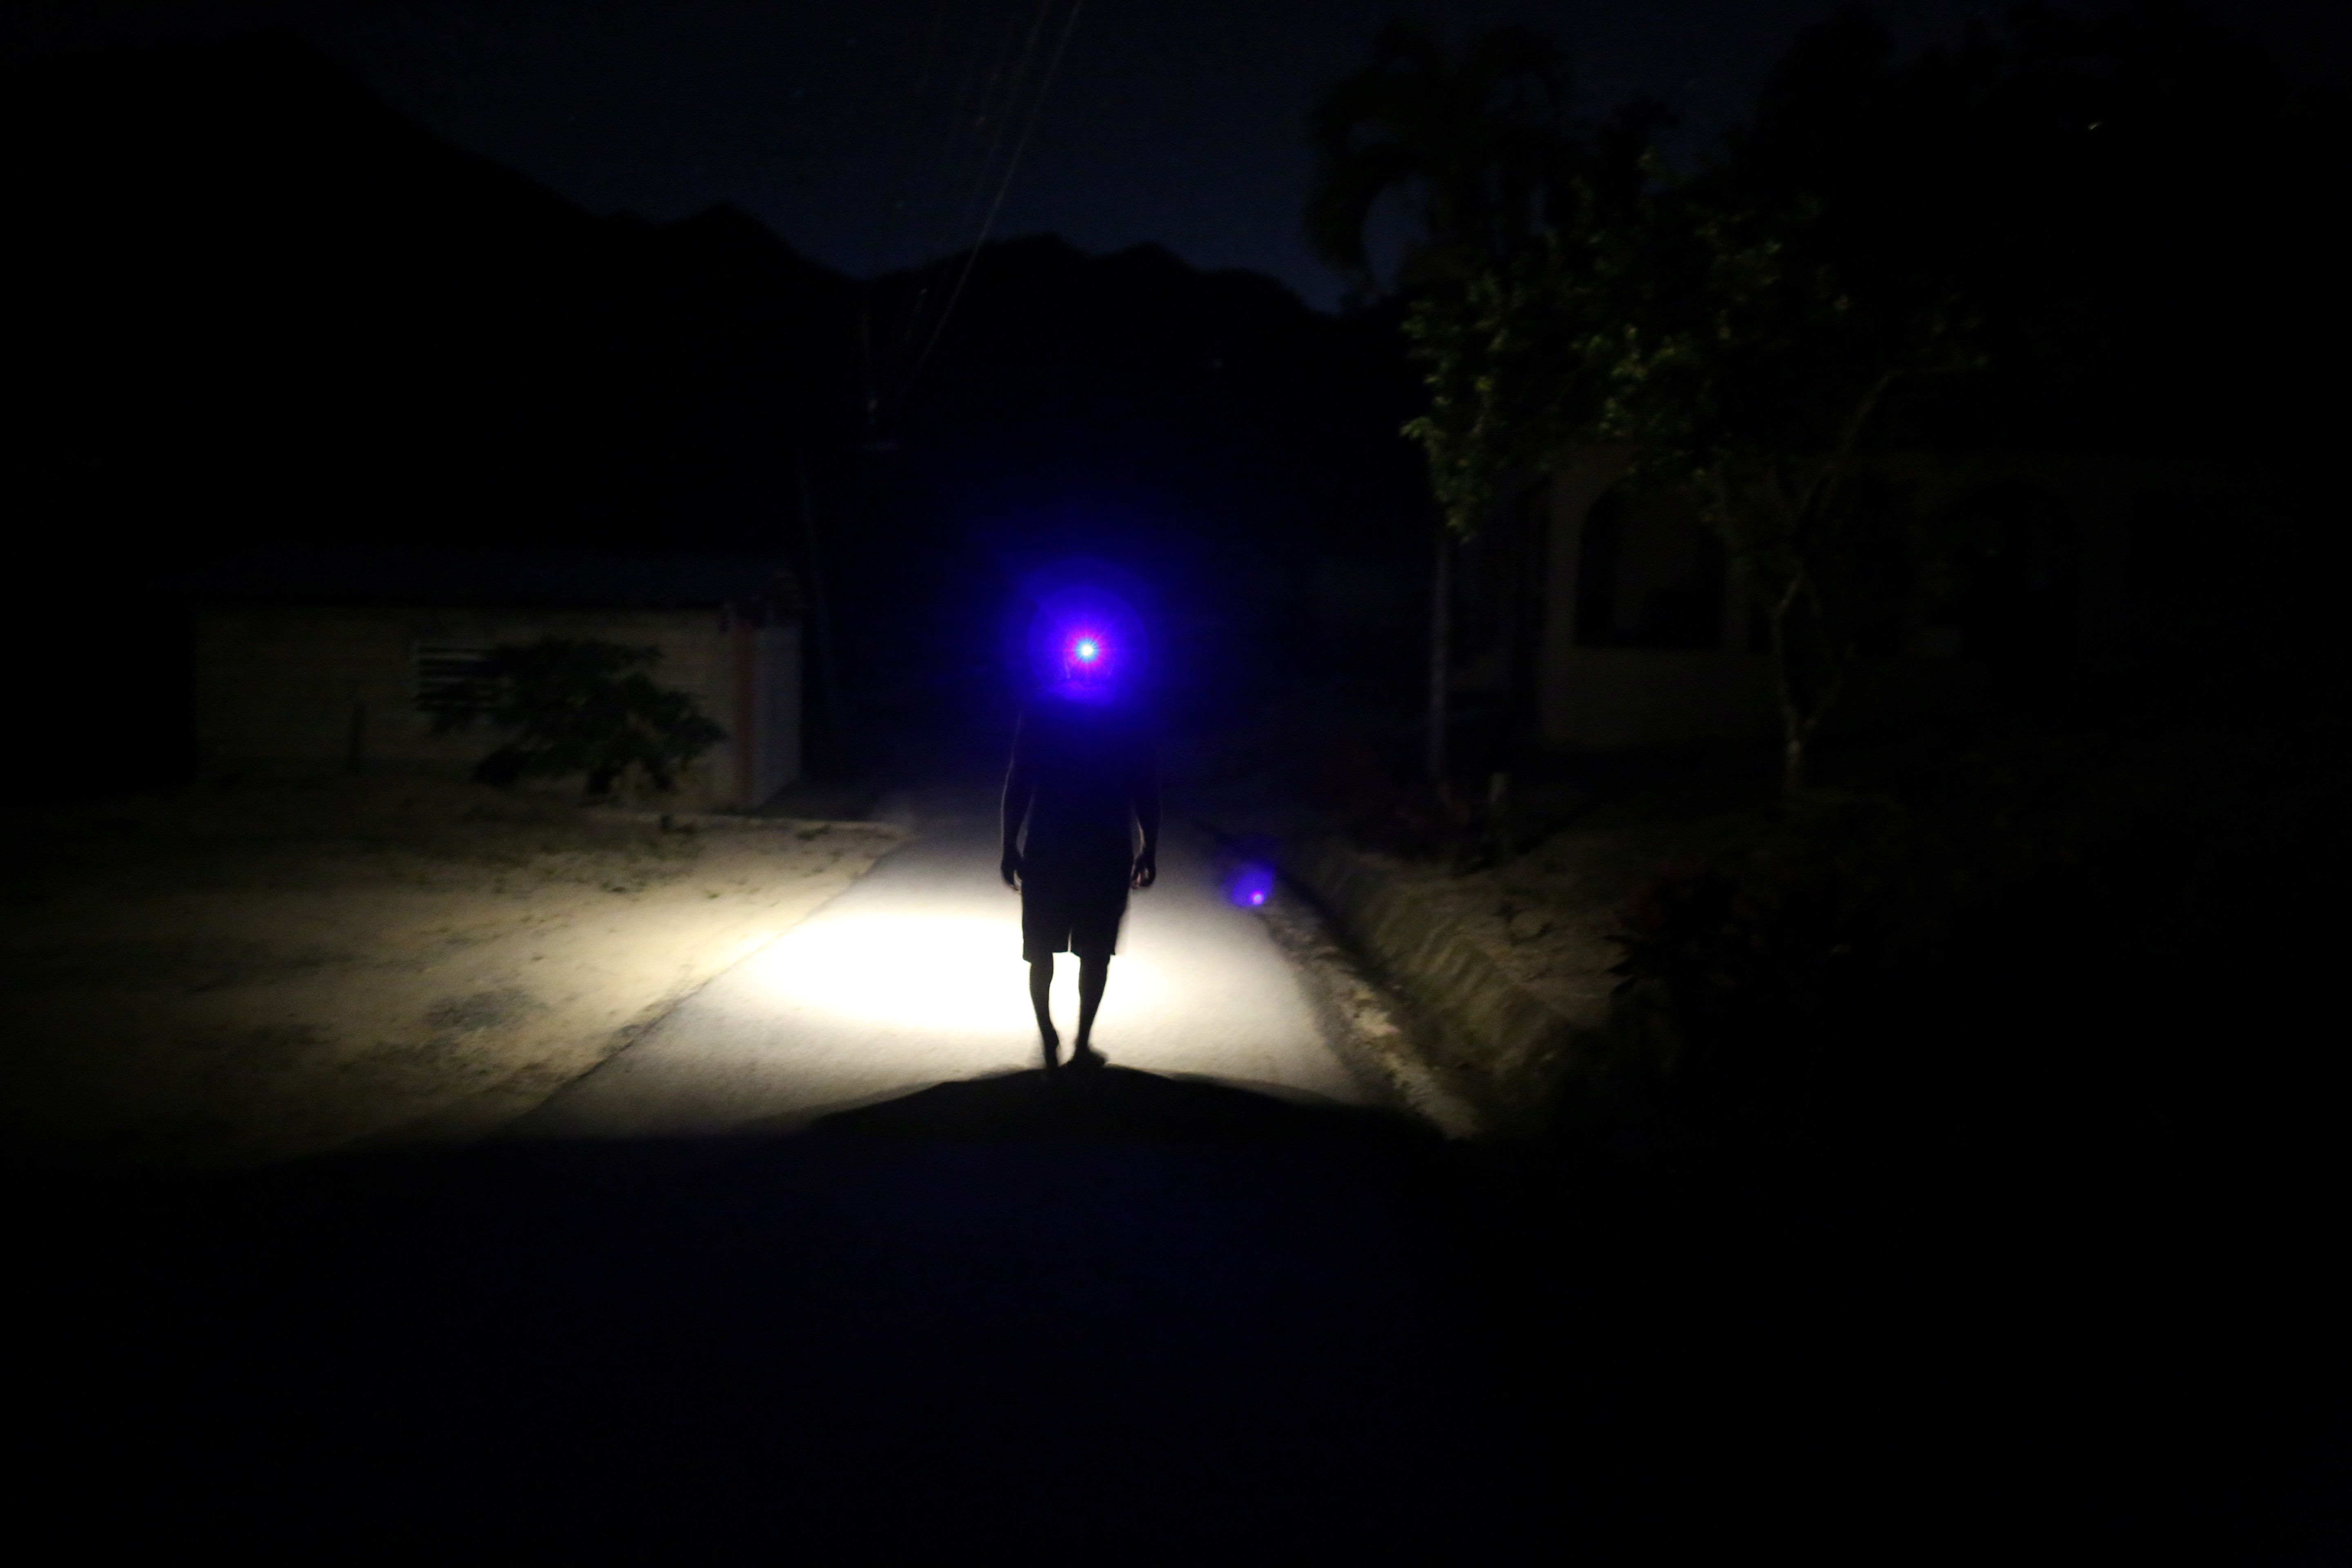 Jose Alvarez, 60, uses a head lamp while walking in the dark as the island's fragile power system is still reeling from the devastation wrought by Hurricane Maria eight months ago, in Jayuya, Puerto Rico May 10, 2018. Picture taken May 10, 2018. REUTERS/Alvin Baez